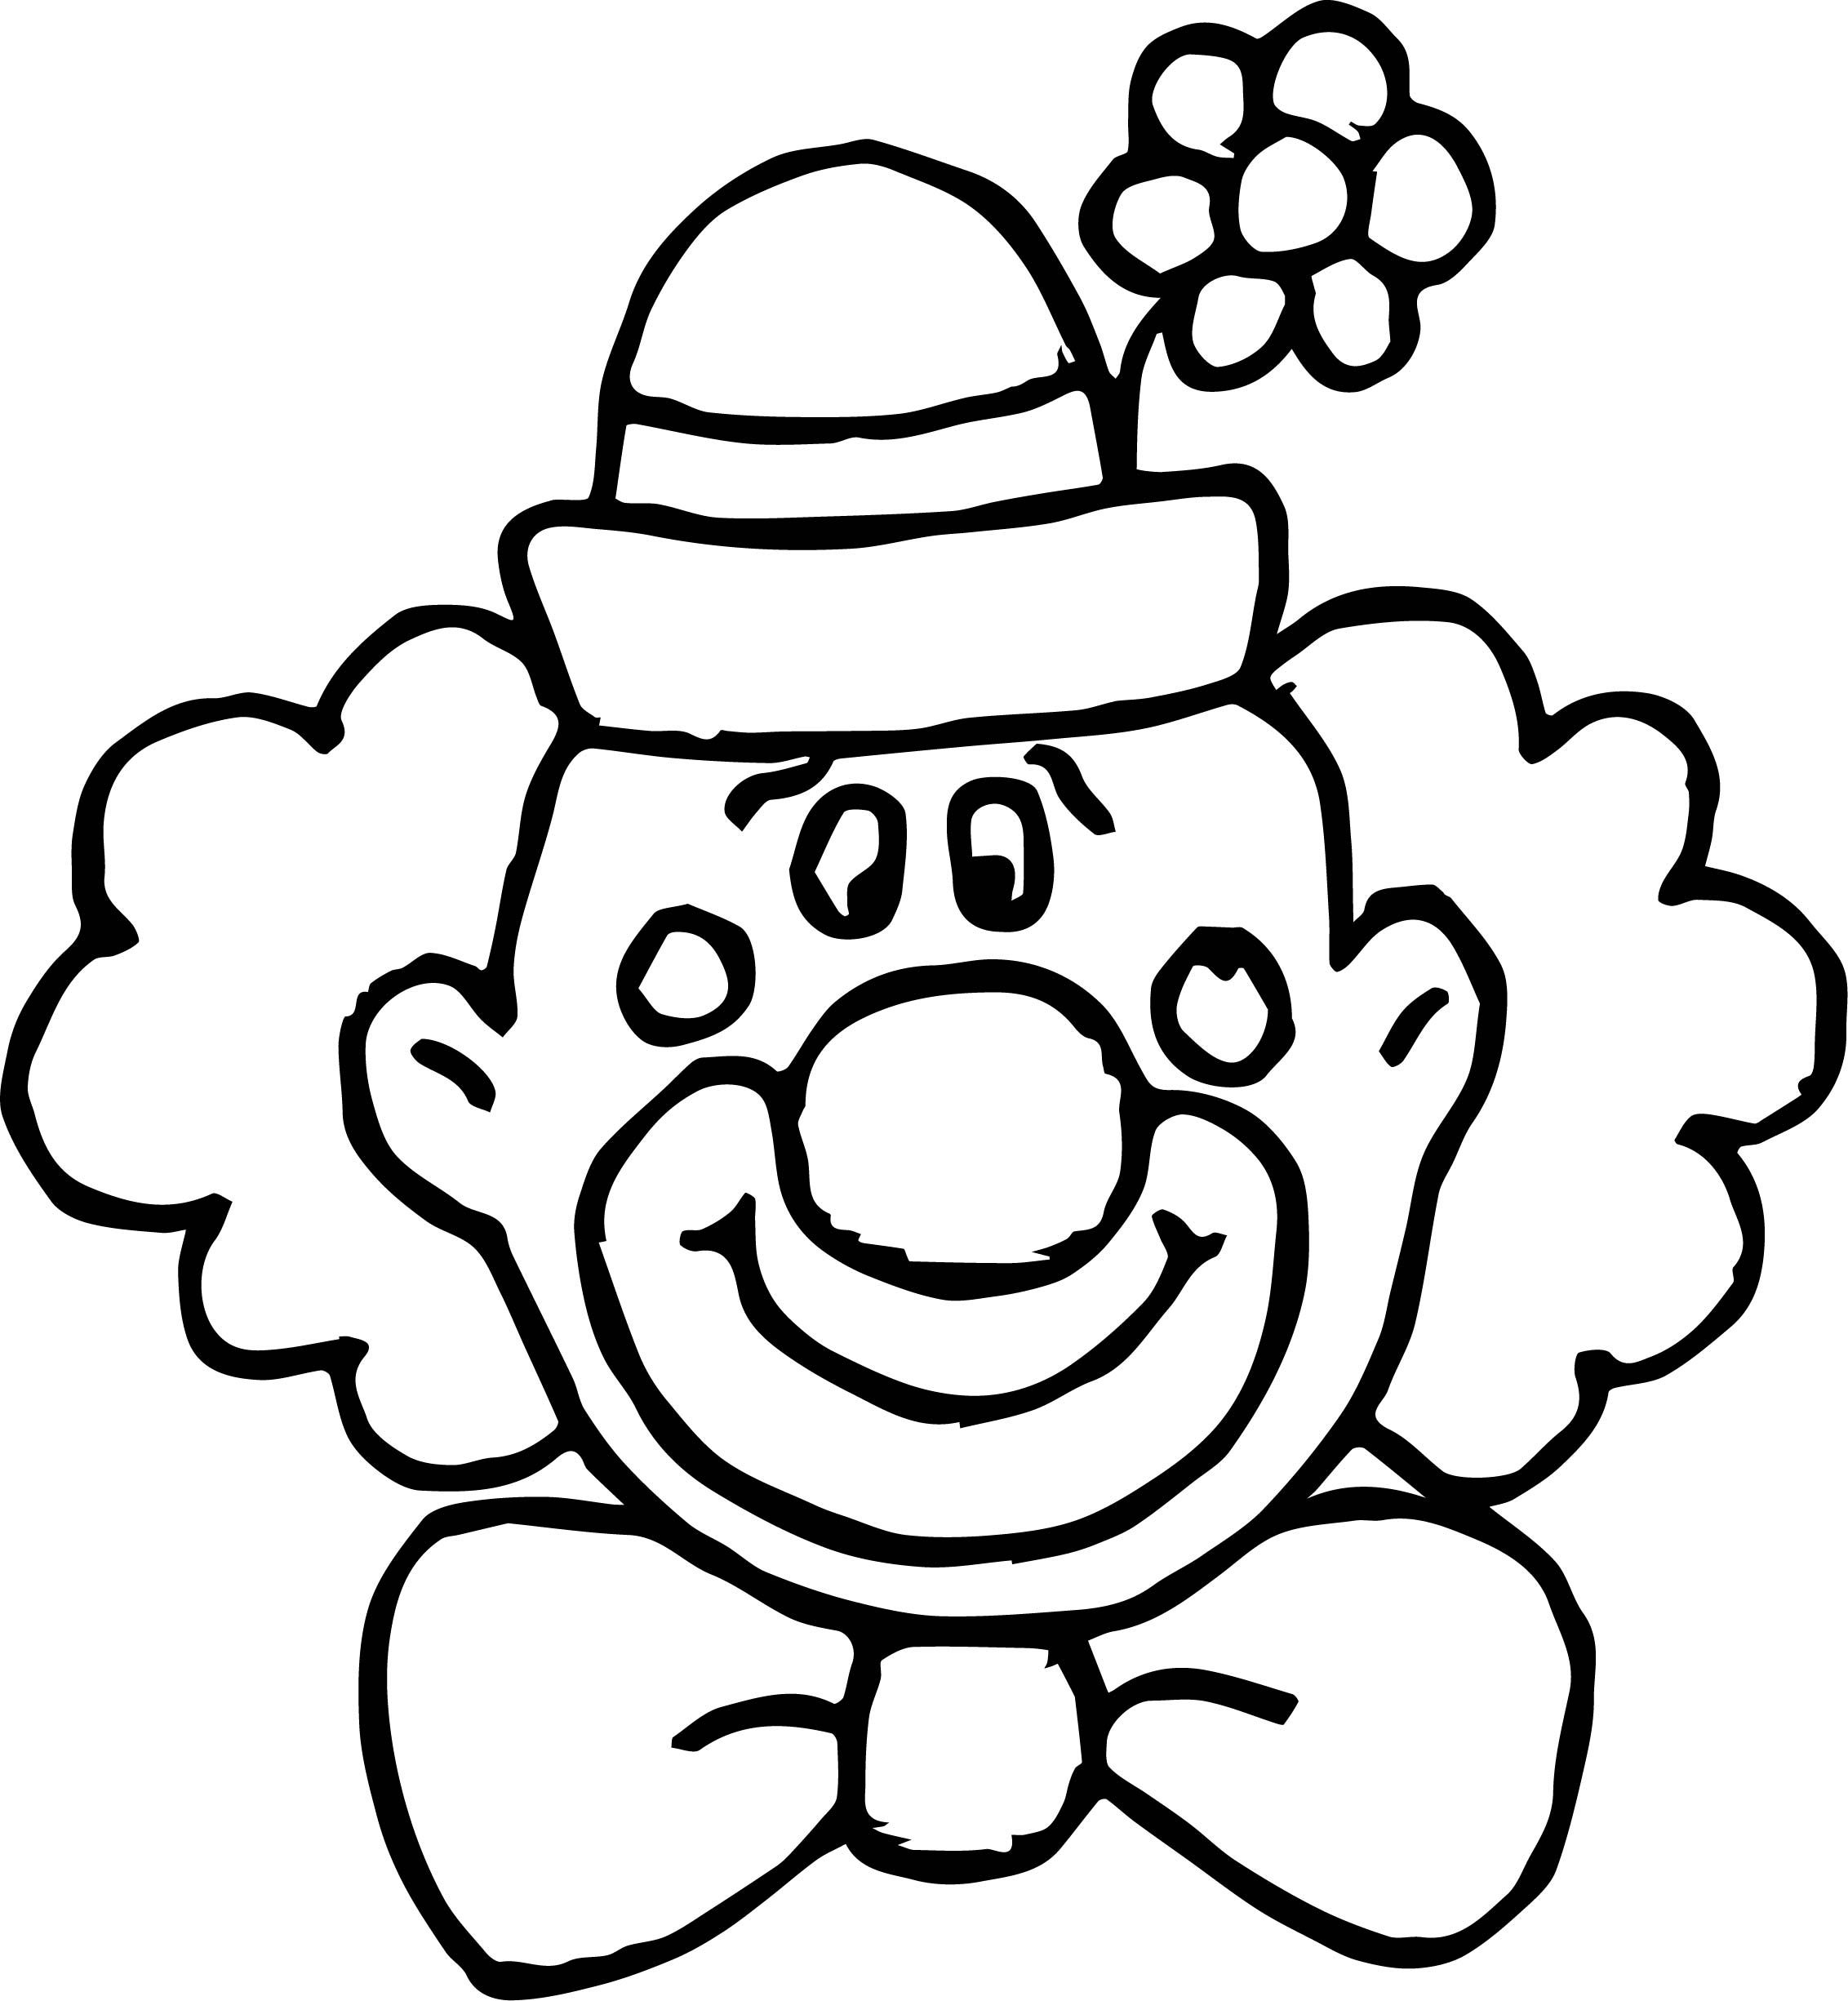 Nice Flower Clown Face Coloring Page Clown Crafts Clown Faces